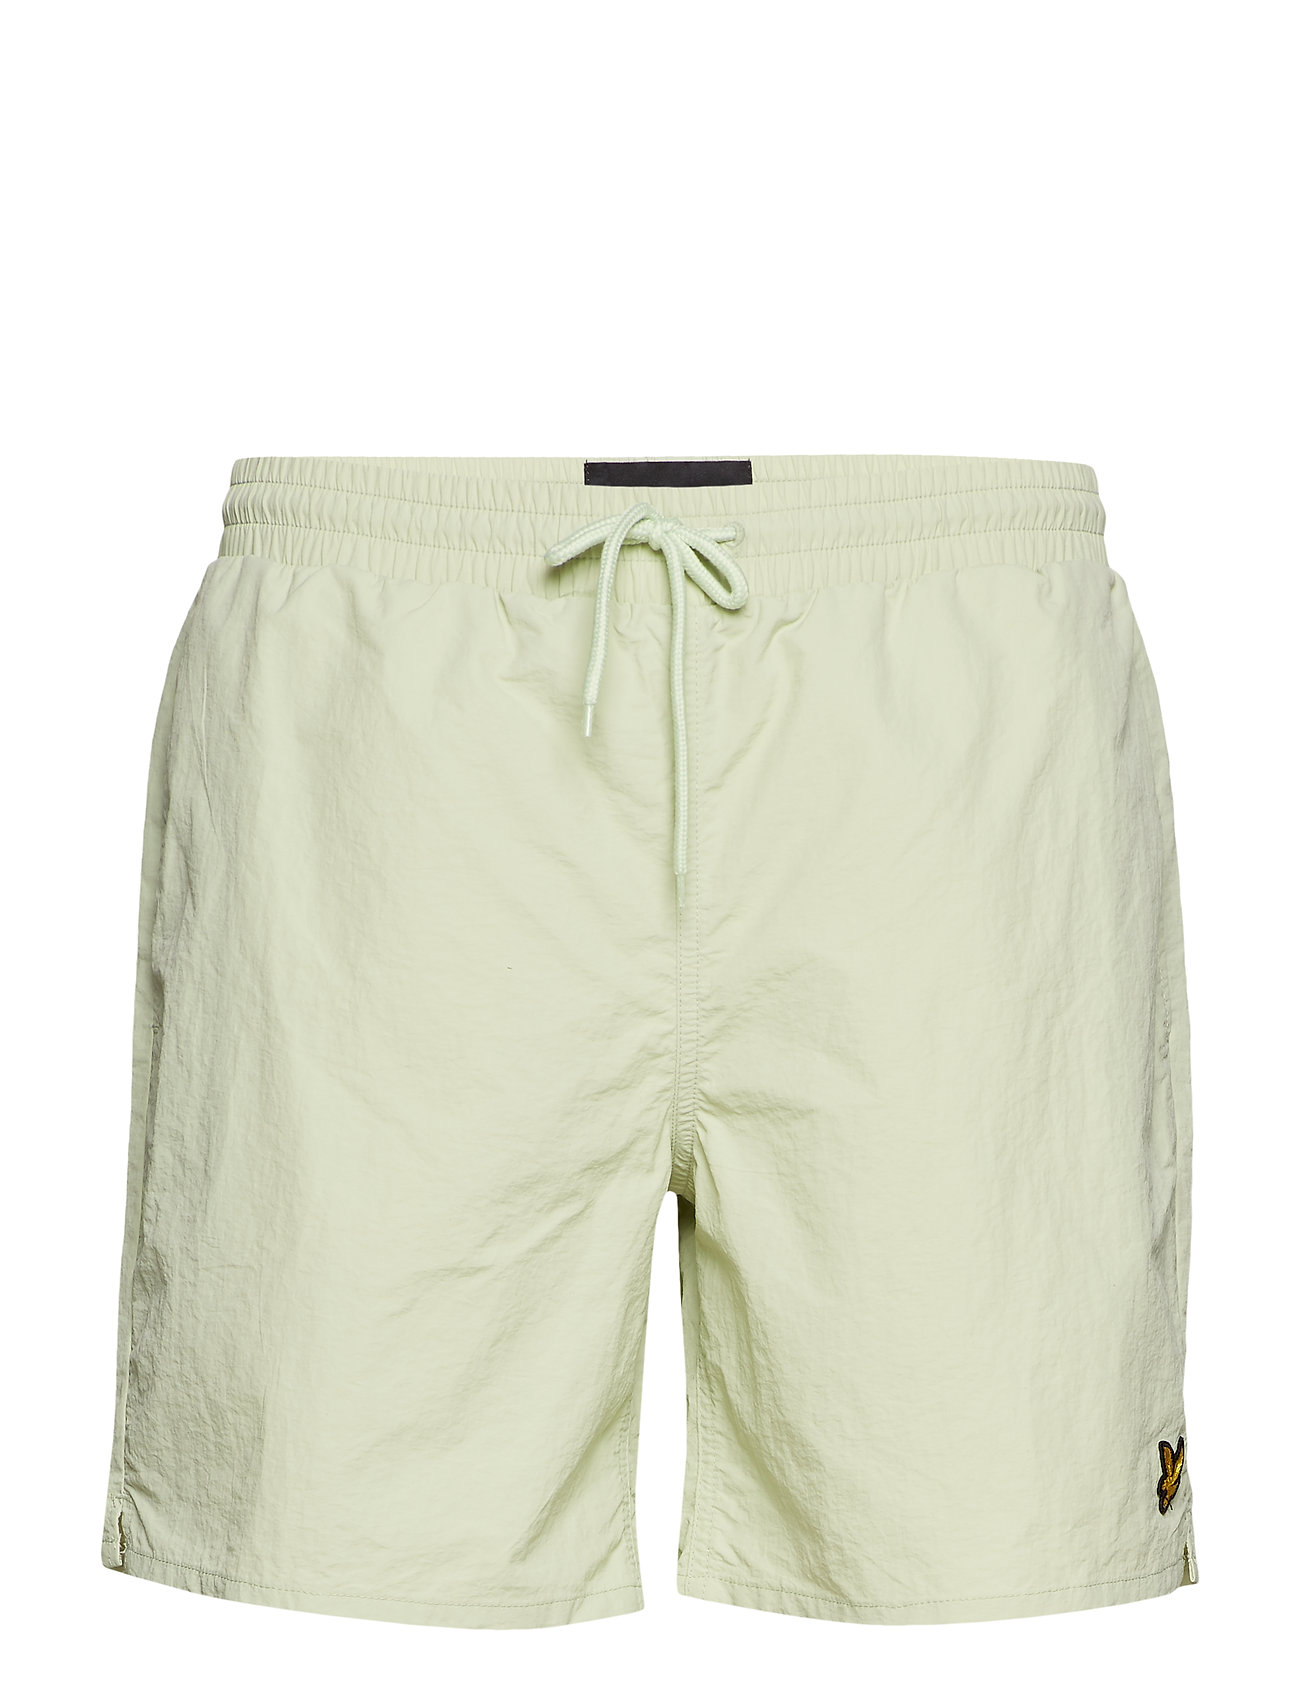 548b3369f9 Plain Swim Short (Sea Foam Green) (£26) - Lyle & Scott - | Boozt.com